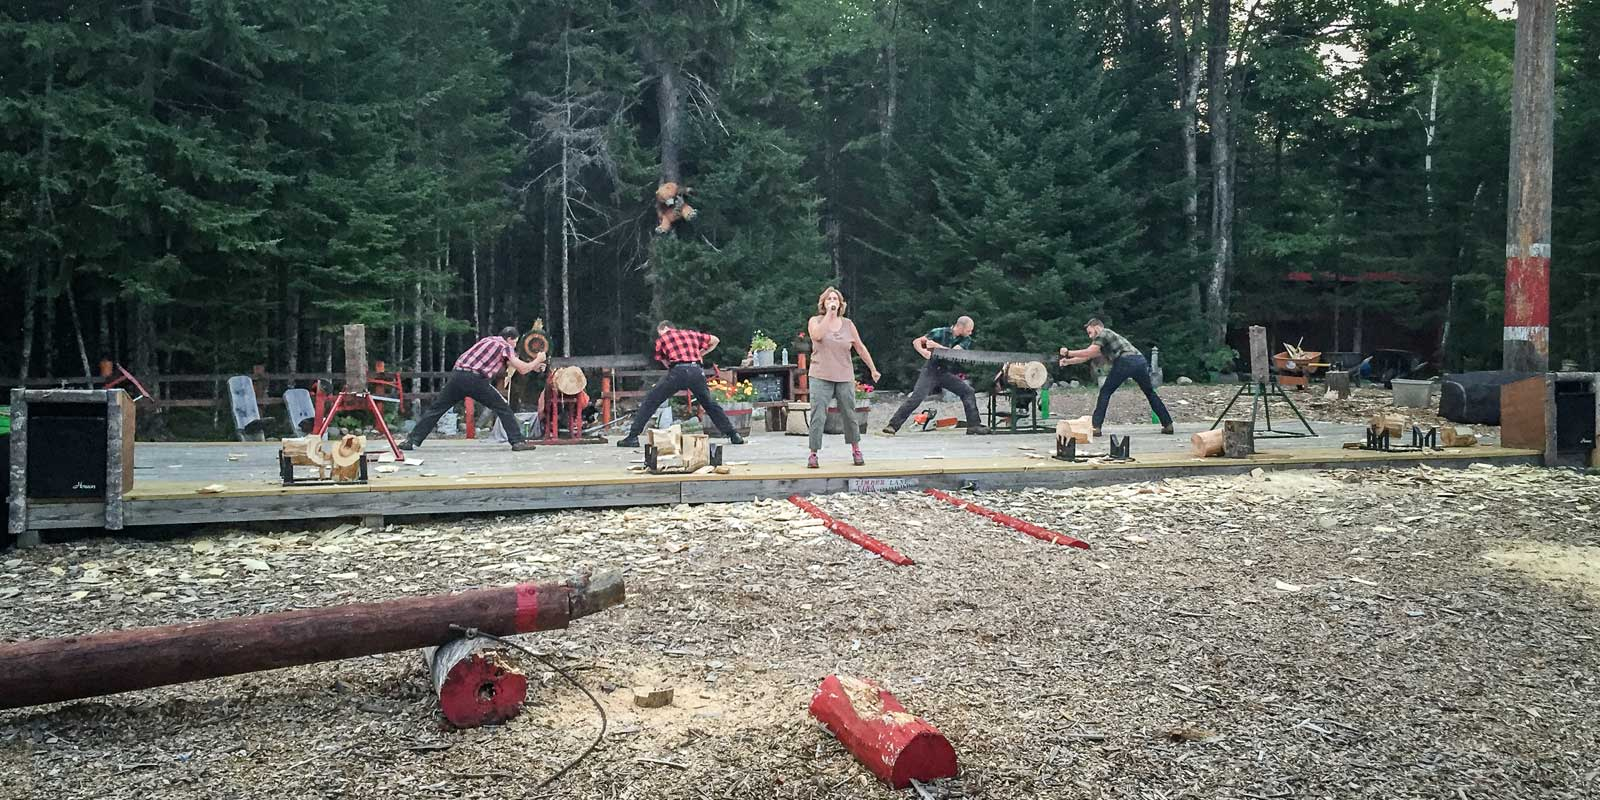 Two teams of lumberjacks compete at hand-sawing a log.